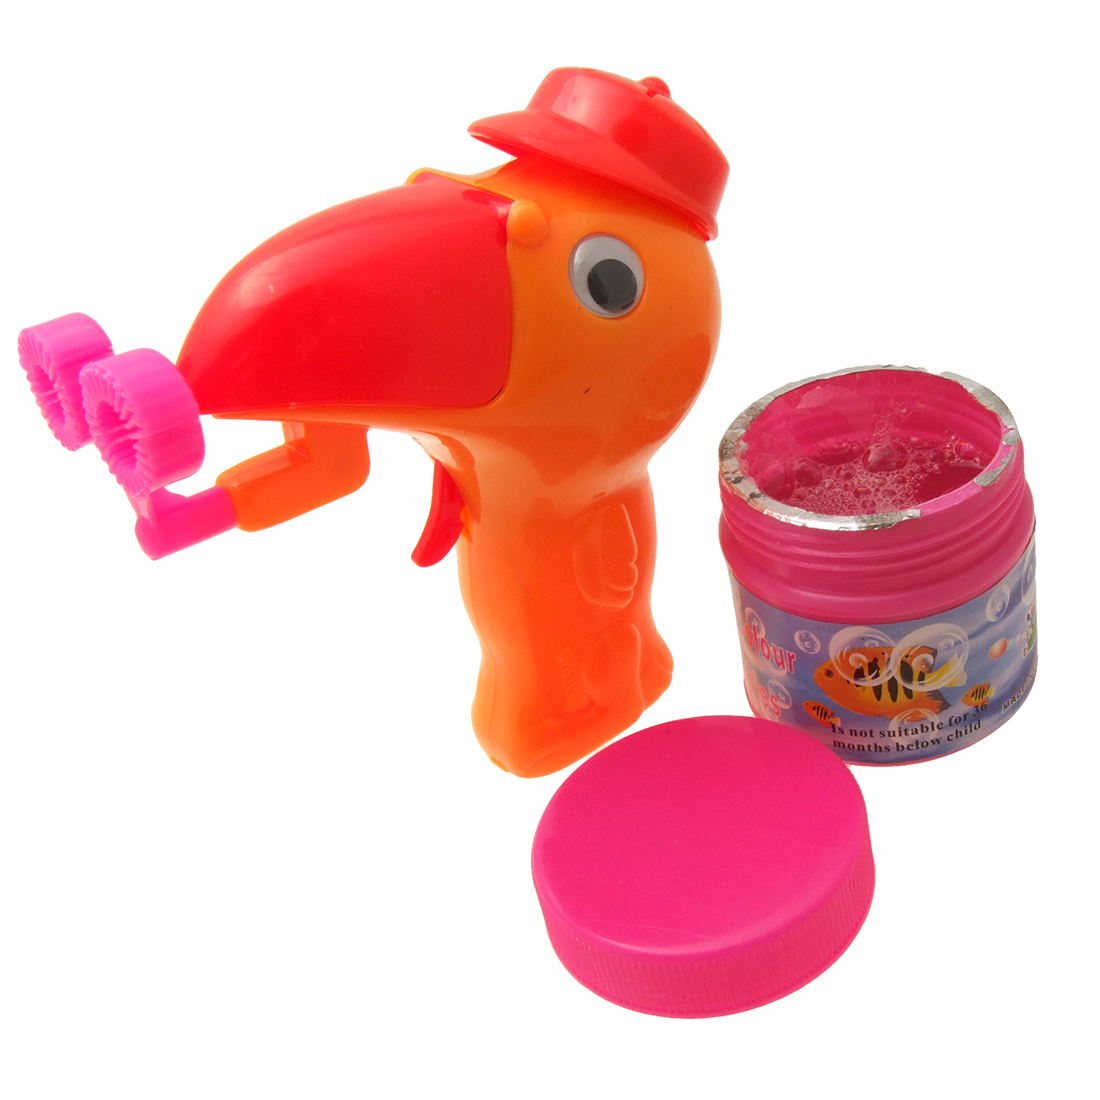 Red Mouth Orange Bird Hubble Bubble Children's Water Toy